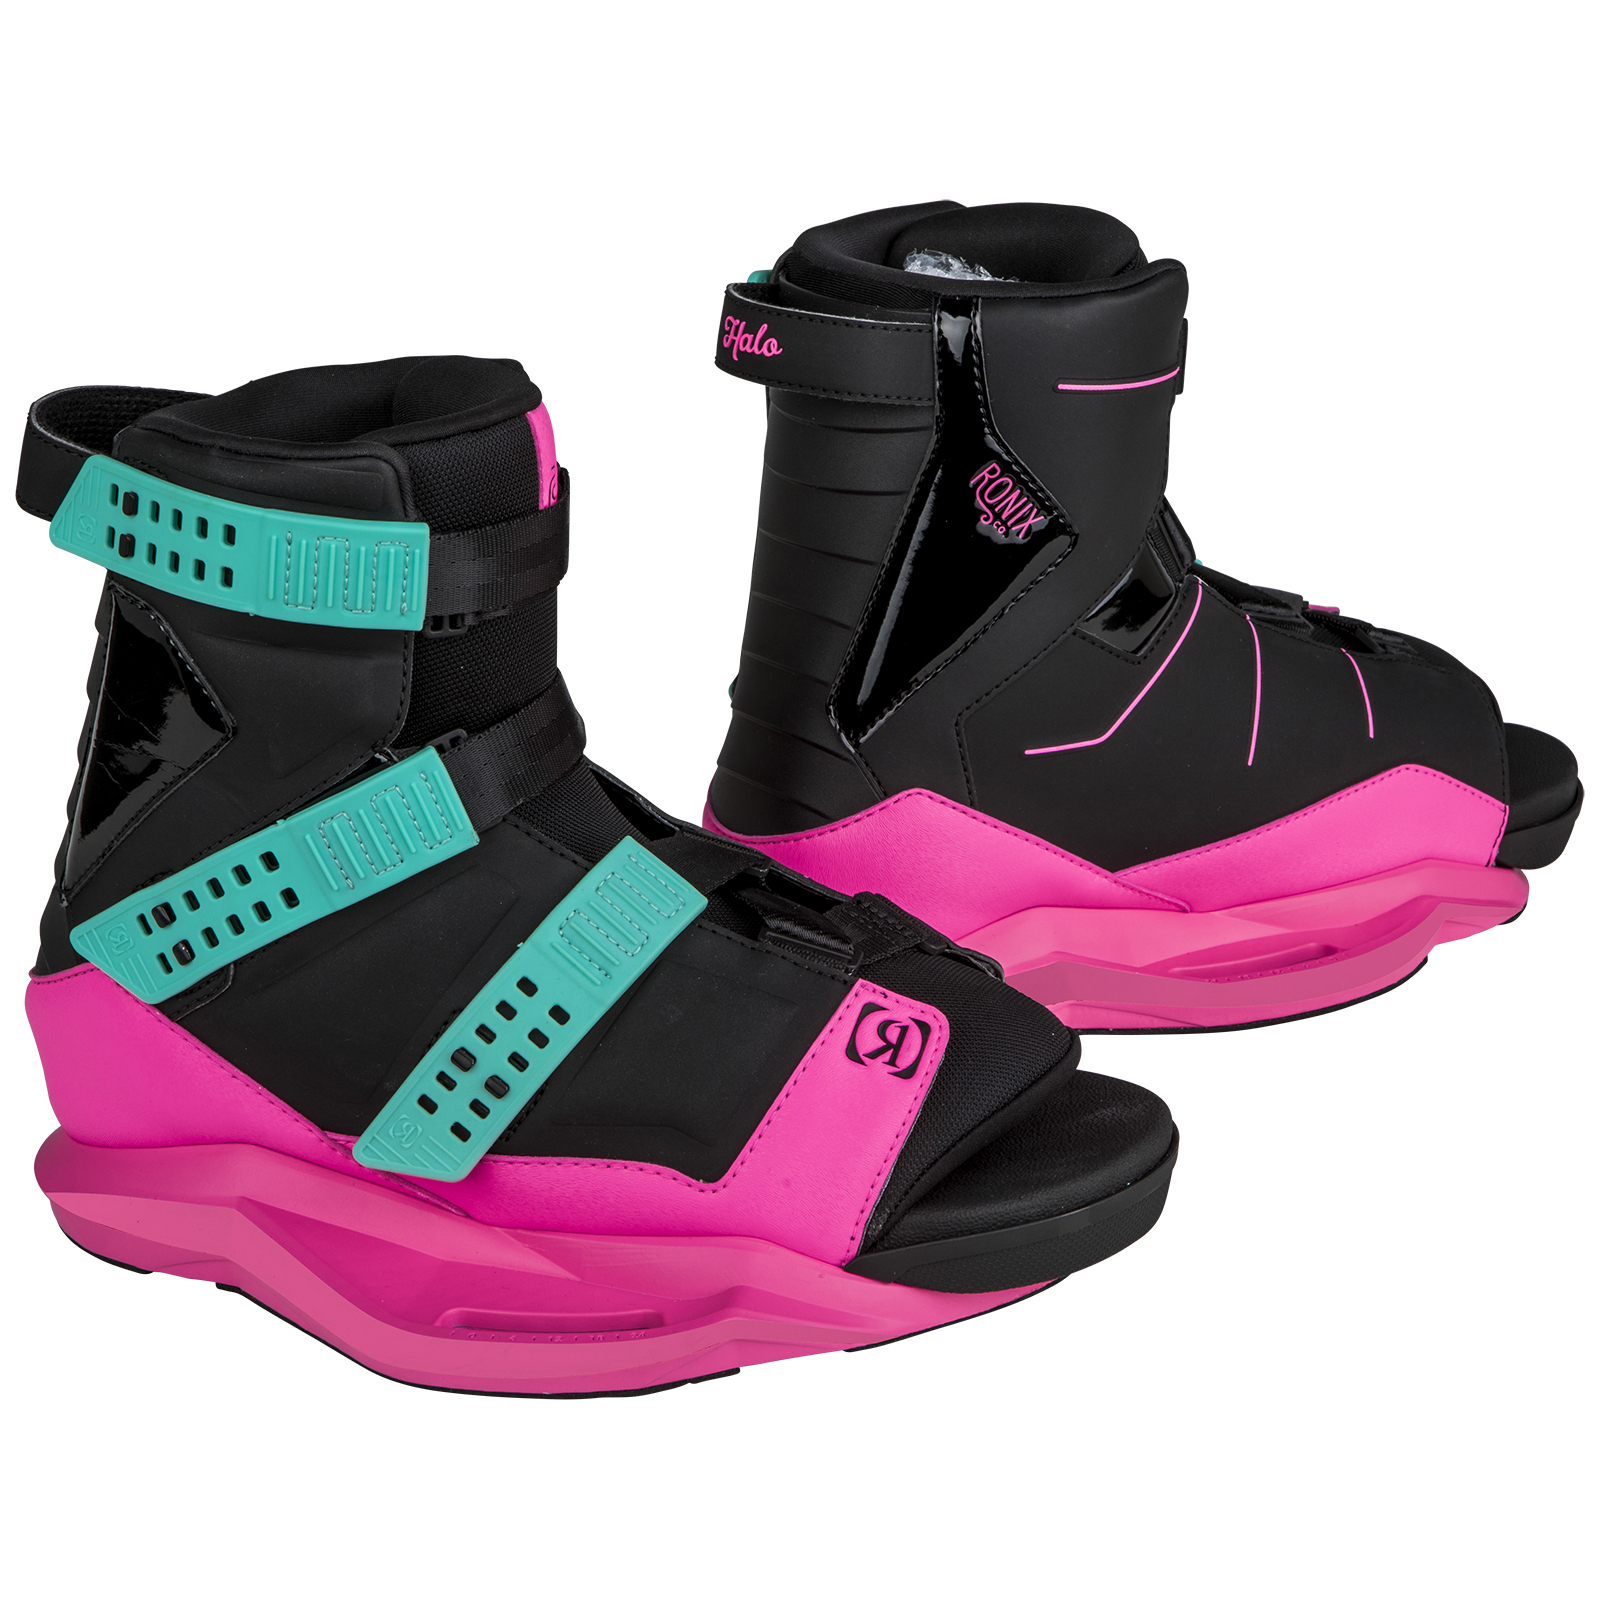 HALO - BLACK / PINK BOOT RONIX 2019